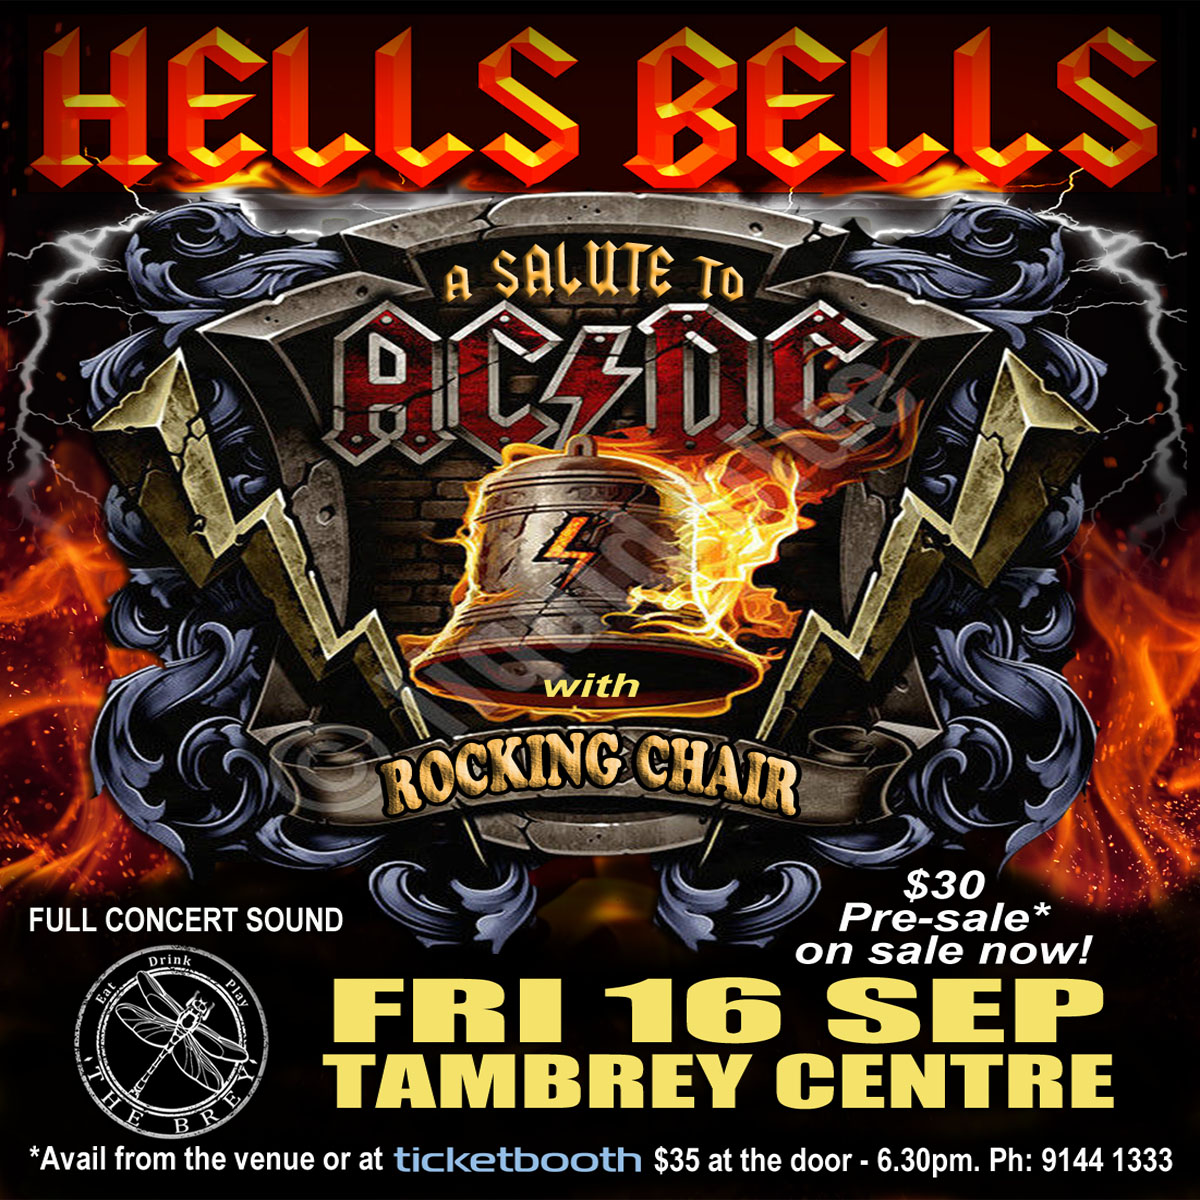 HELLS BELLS: A Salute to AC/DC